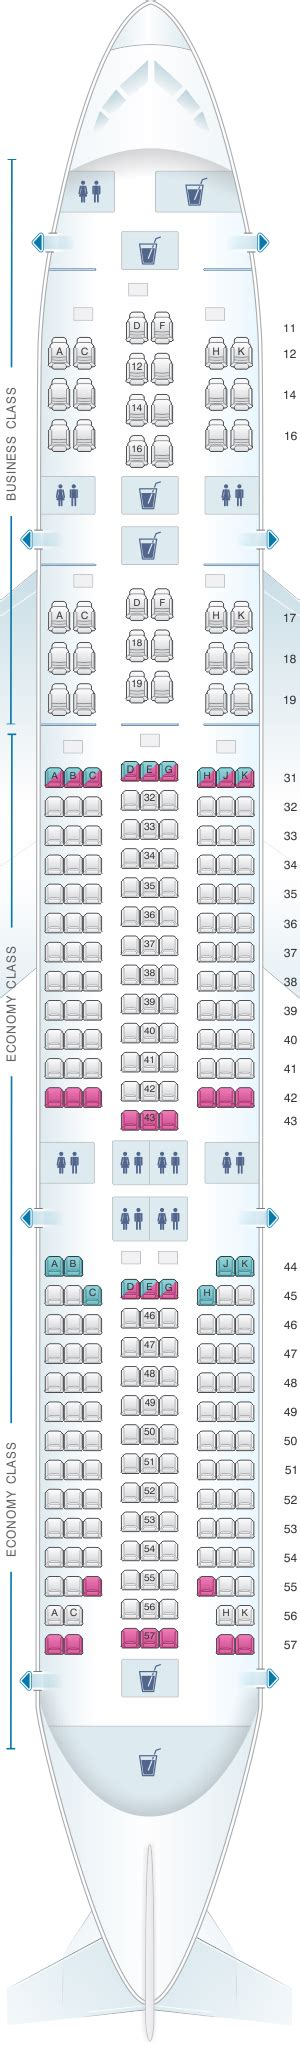 singapore airlines 777 200 seating plan seat map singapore airlines boeing b777 200 sr series